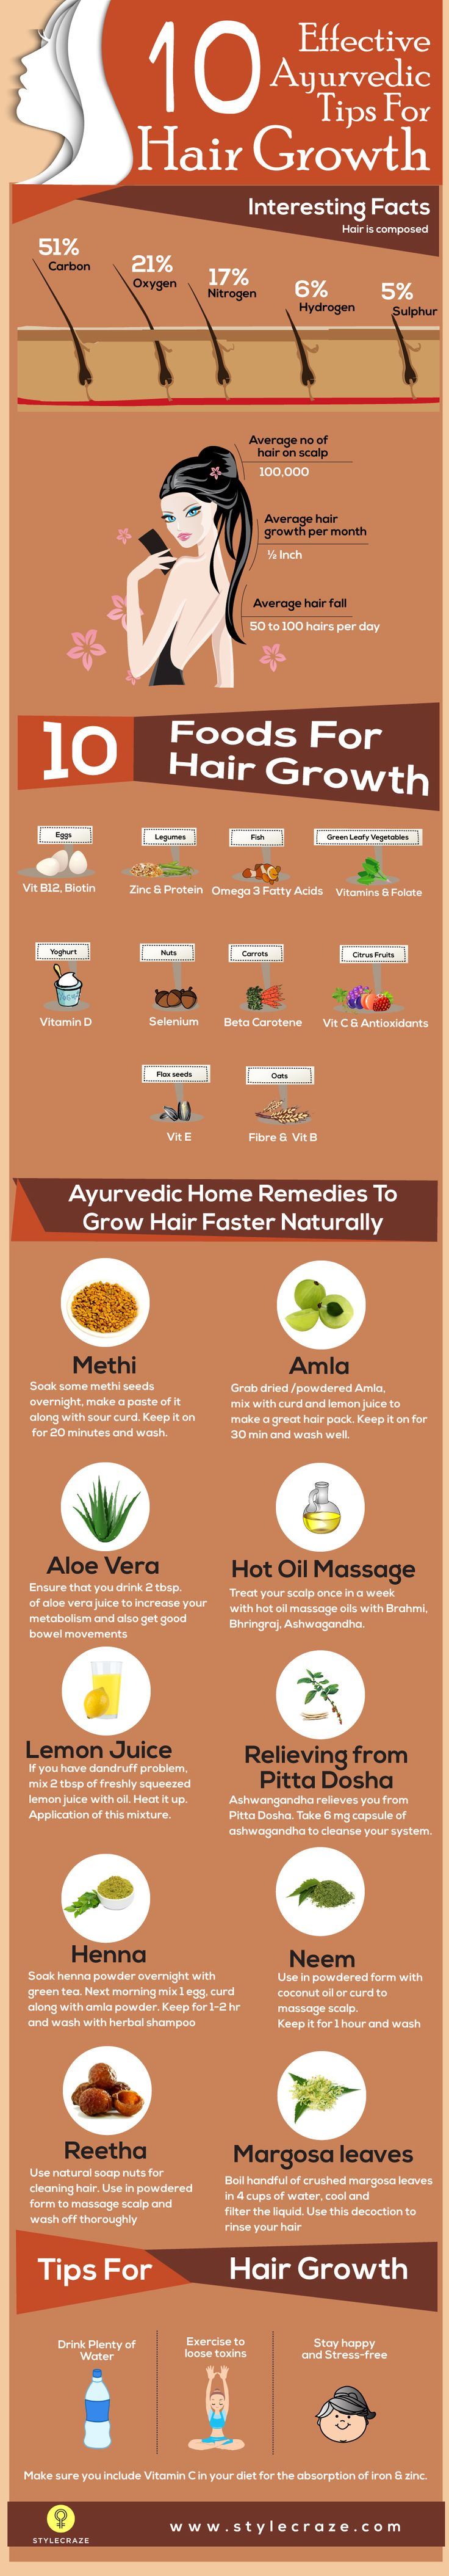 14 Effective Ayurvedic Tips For Hair Growth